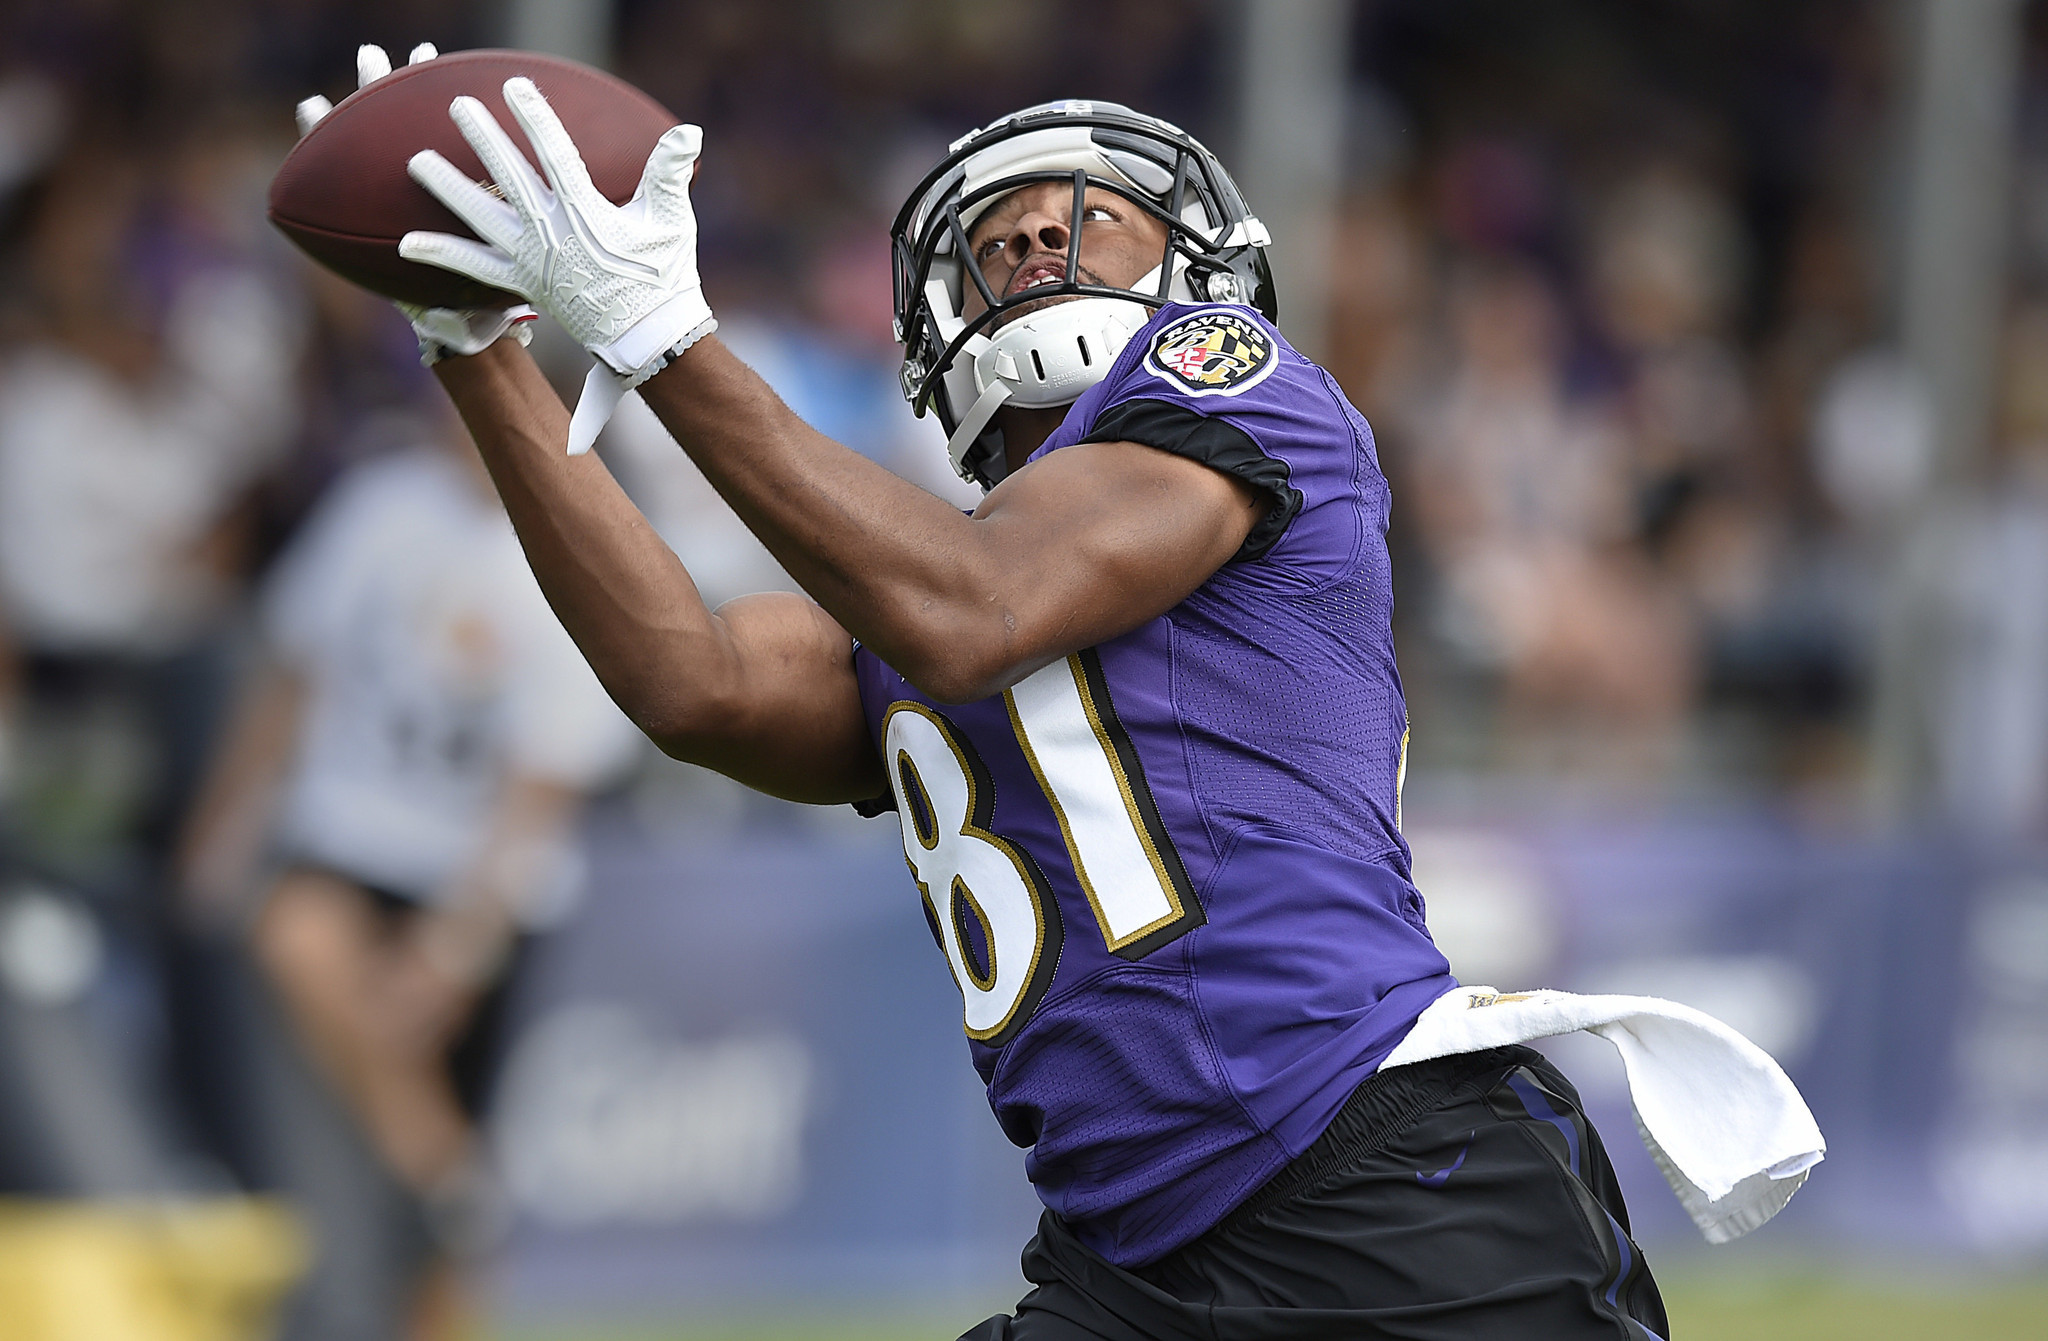 One day as free agent was 'nerve-wracking' for Keenan Reynolds before returning to Ravens